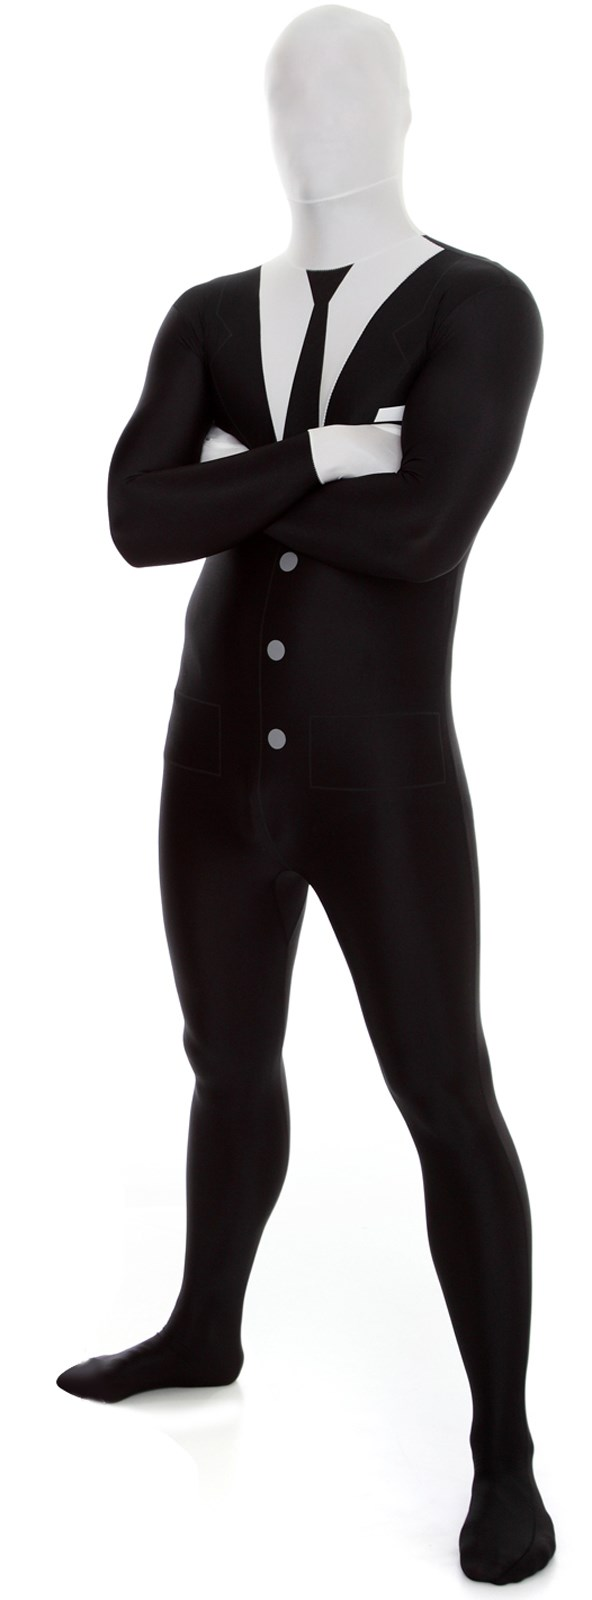 Invisible Man Adult Morphsuit